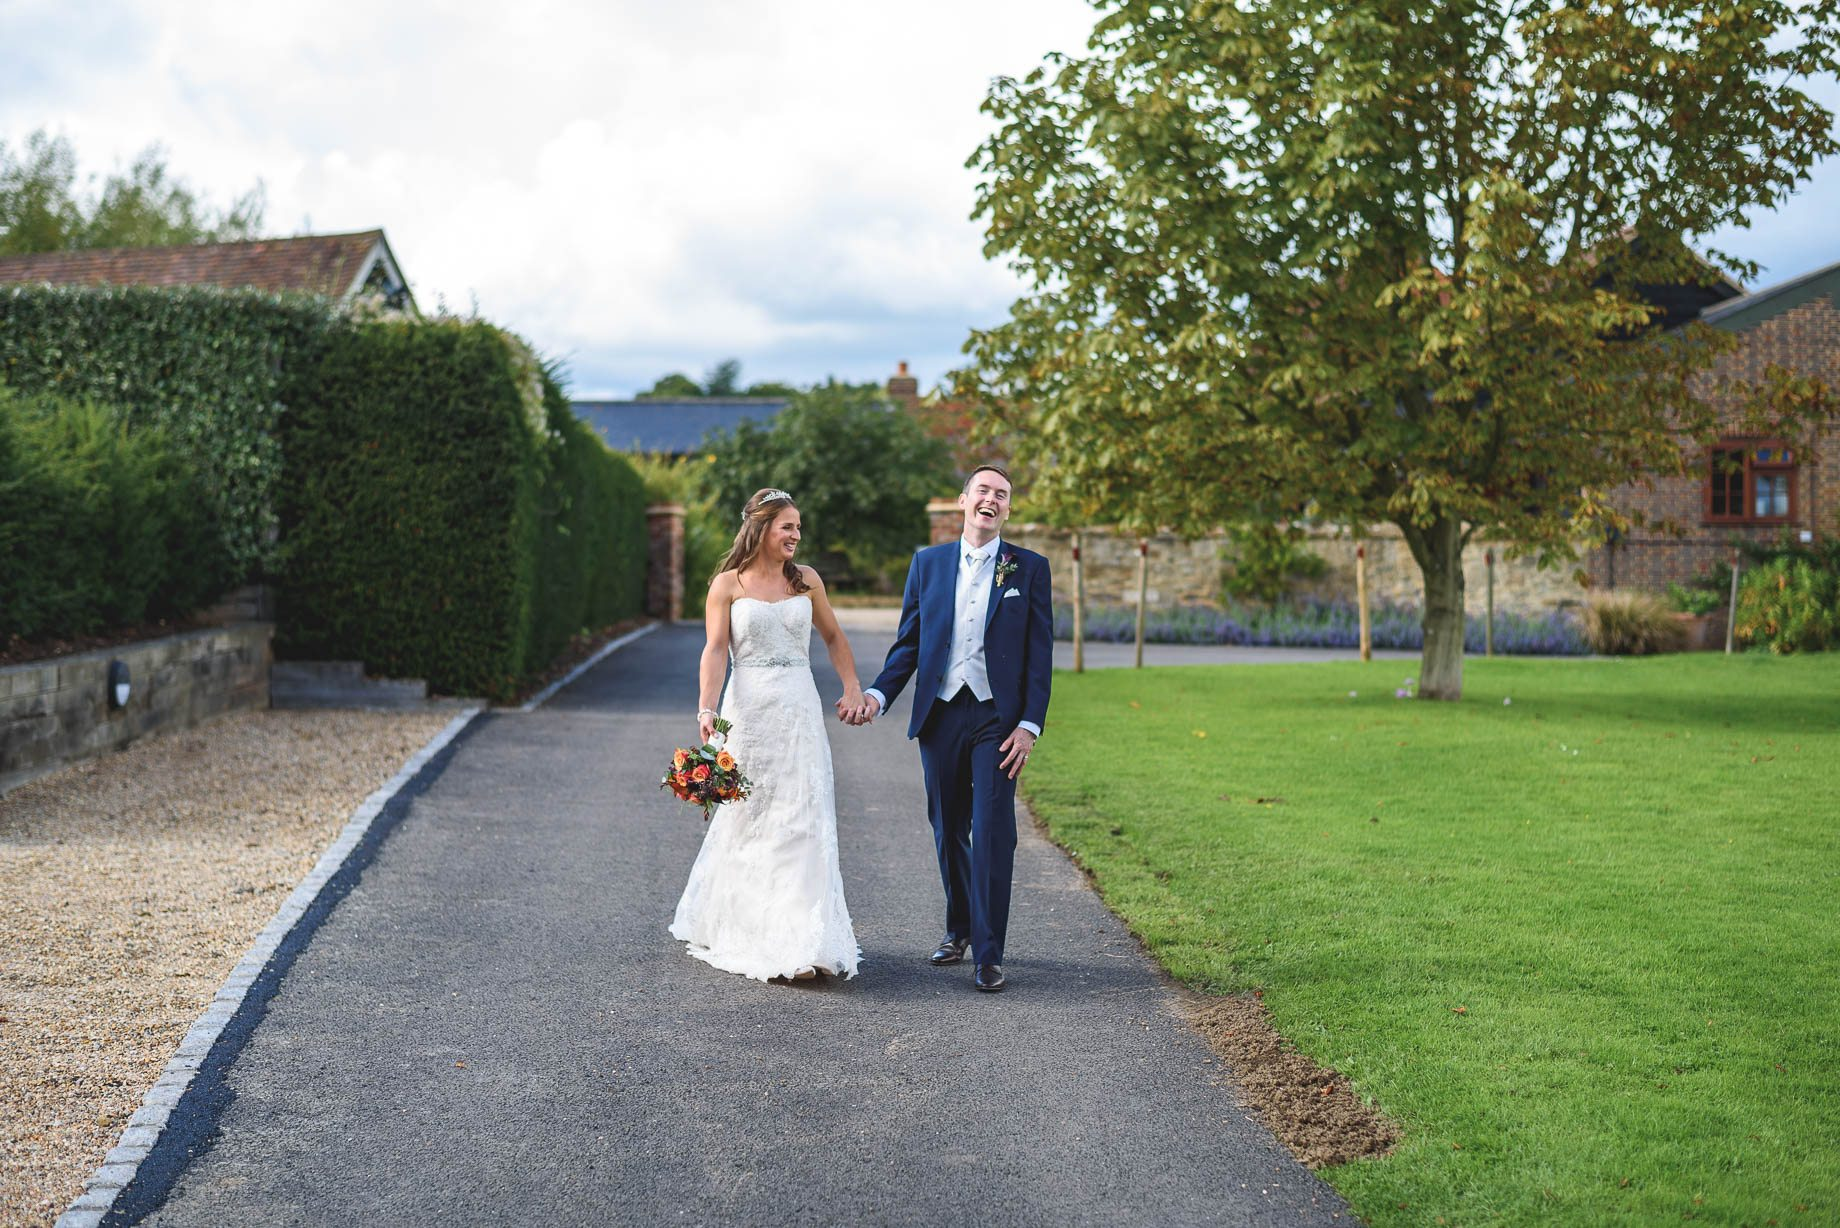 Gate-Street-Barn-wedding-photography-Guy-Collier-Claire-and-Andy-75-of-192